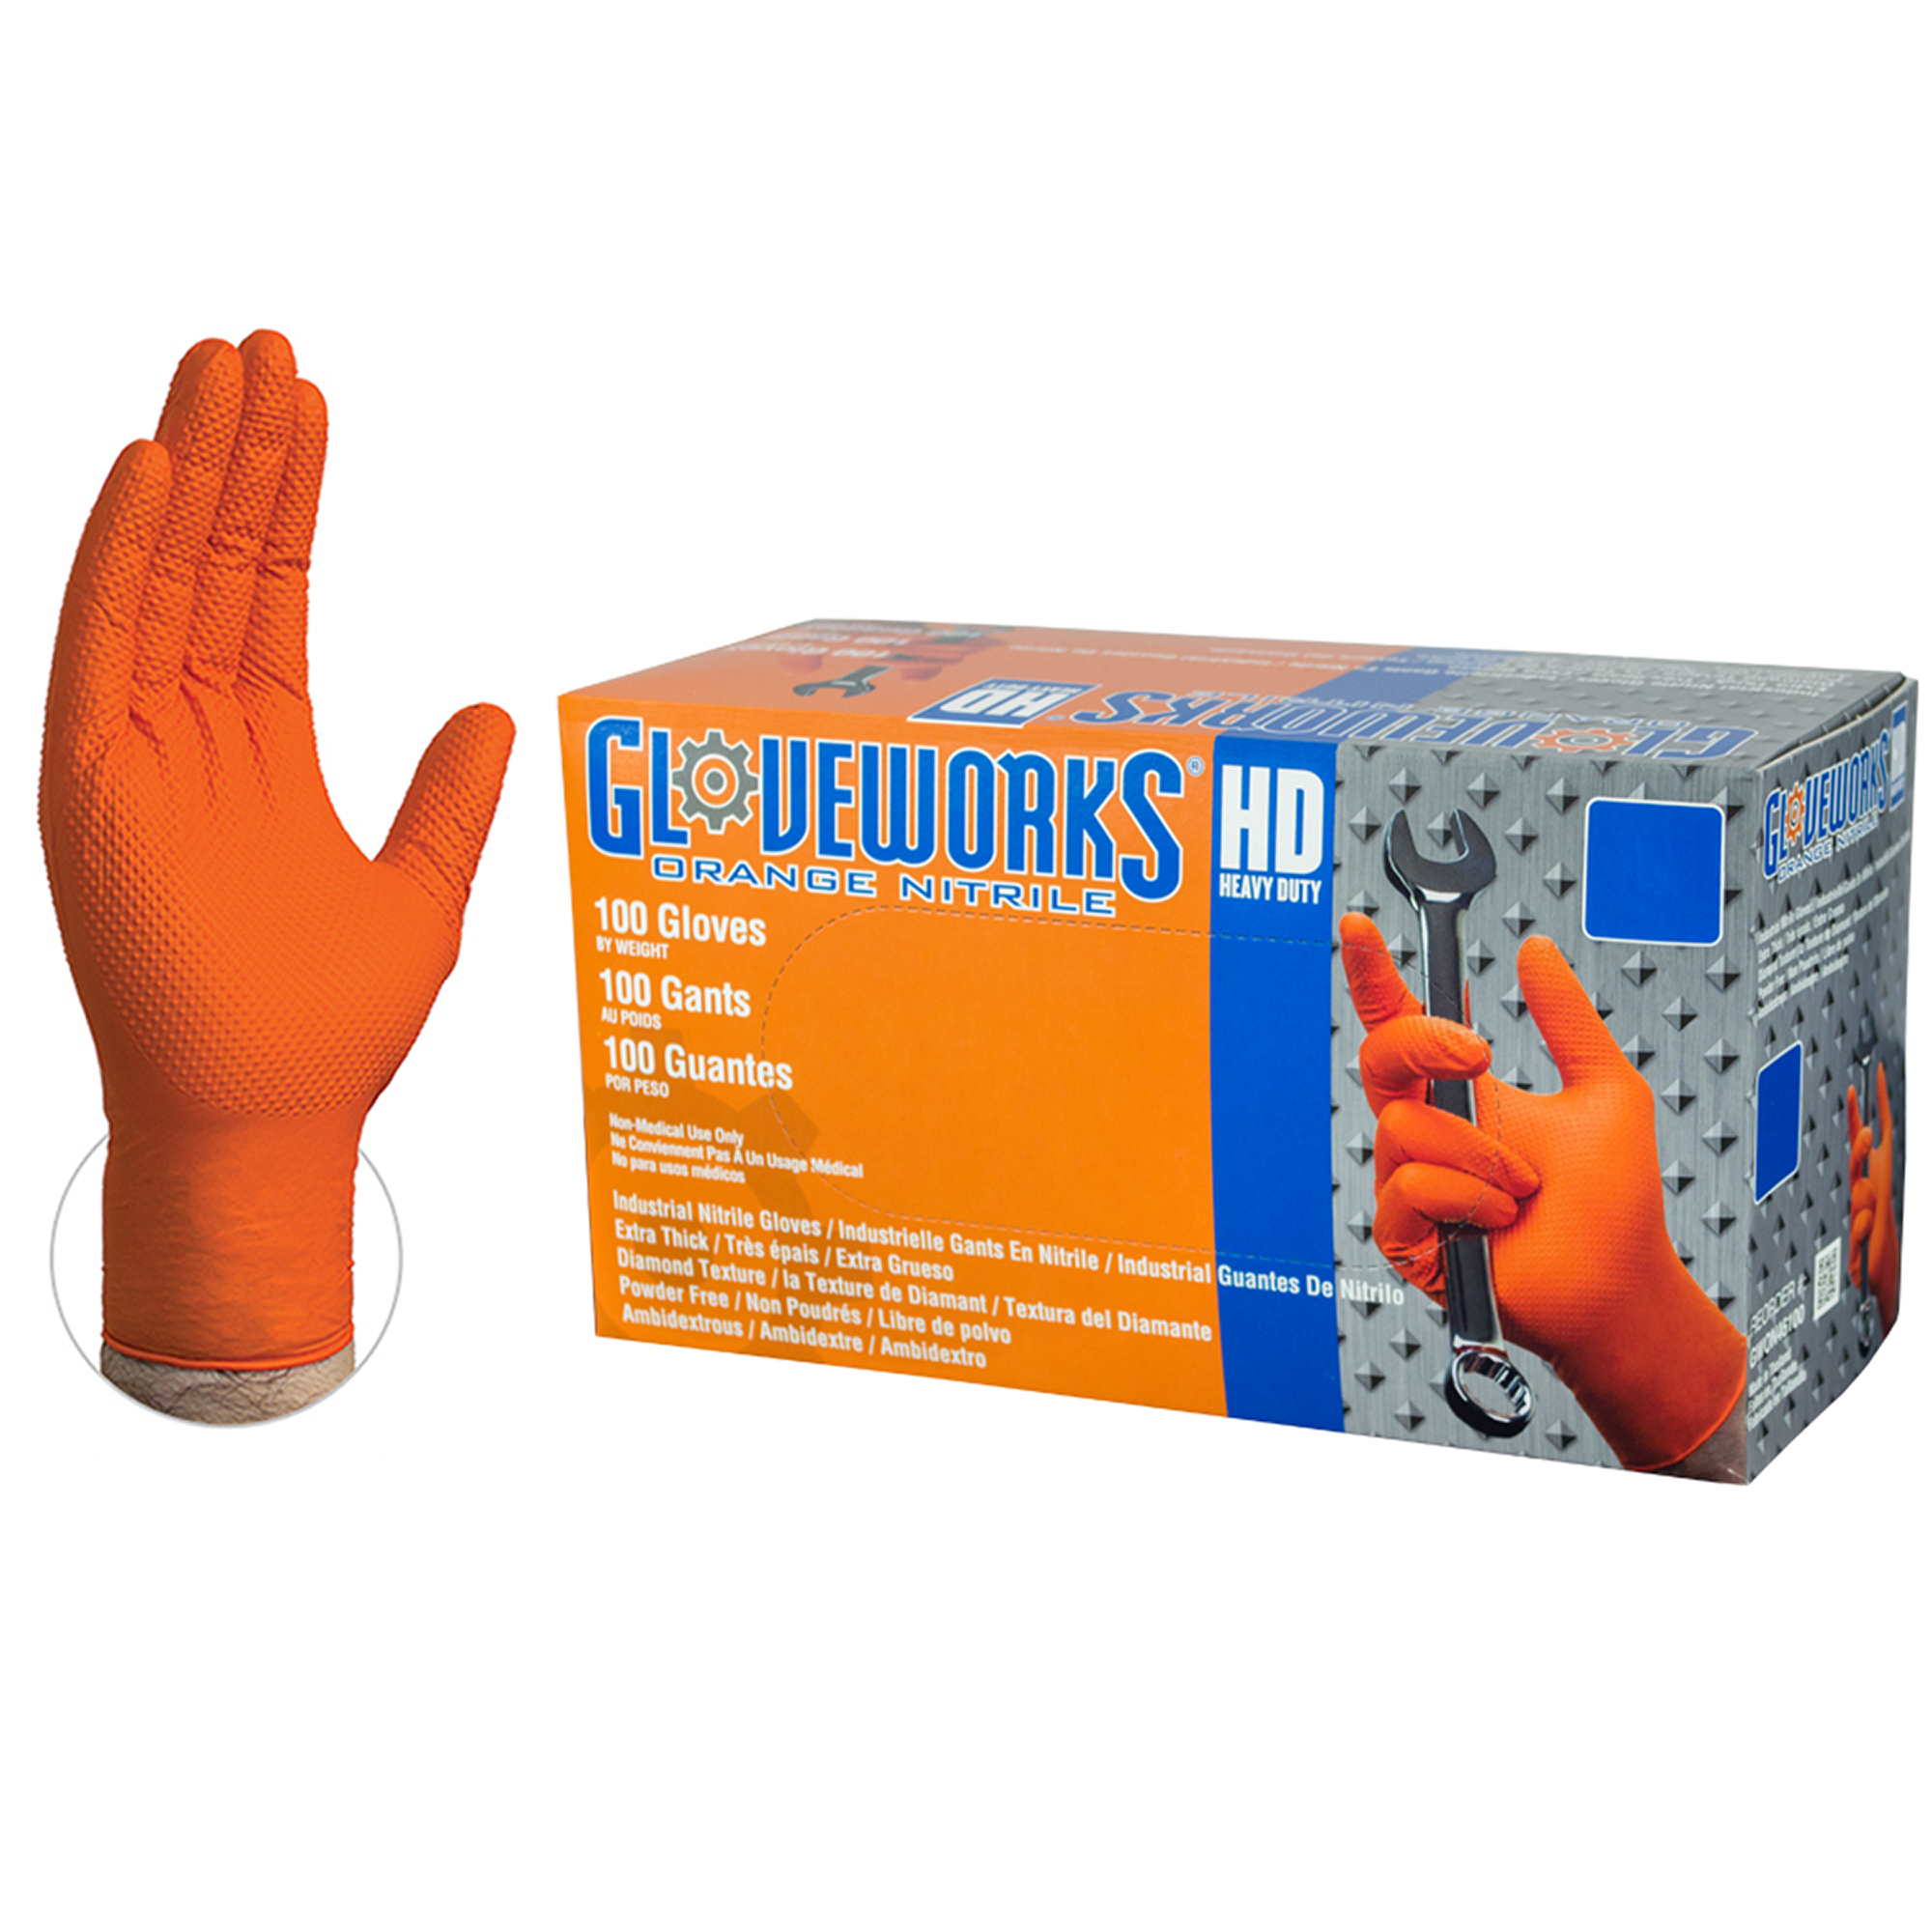 Gloveworks HD GWON Orange Nitrile Industrial Latex Free Disposable Gloves box and hand